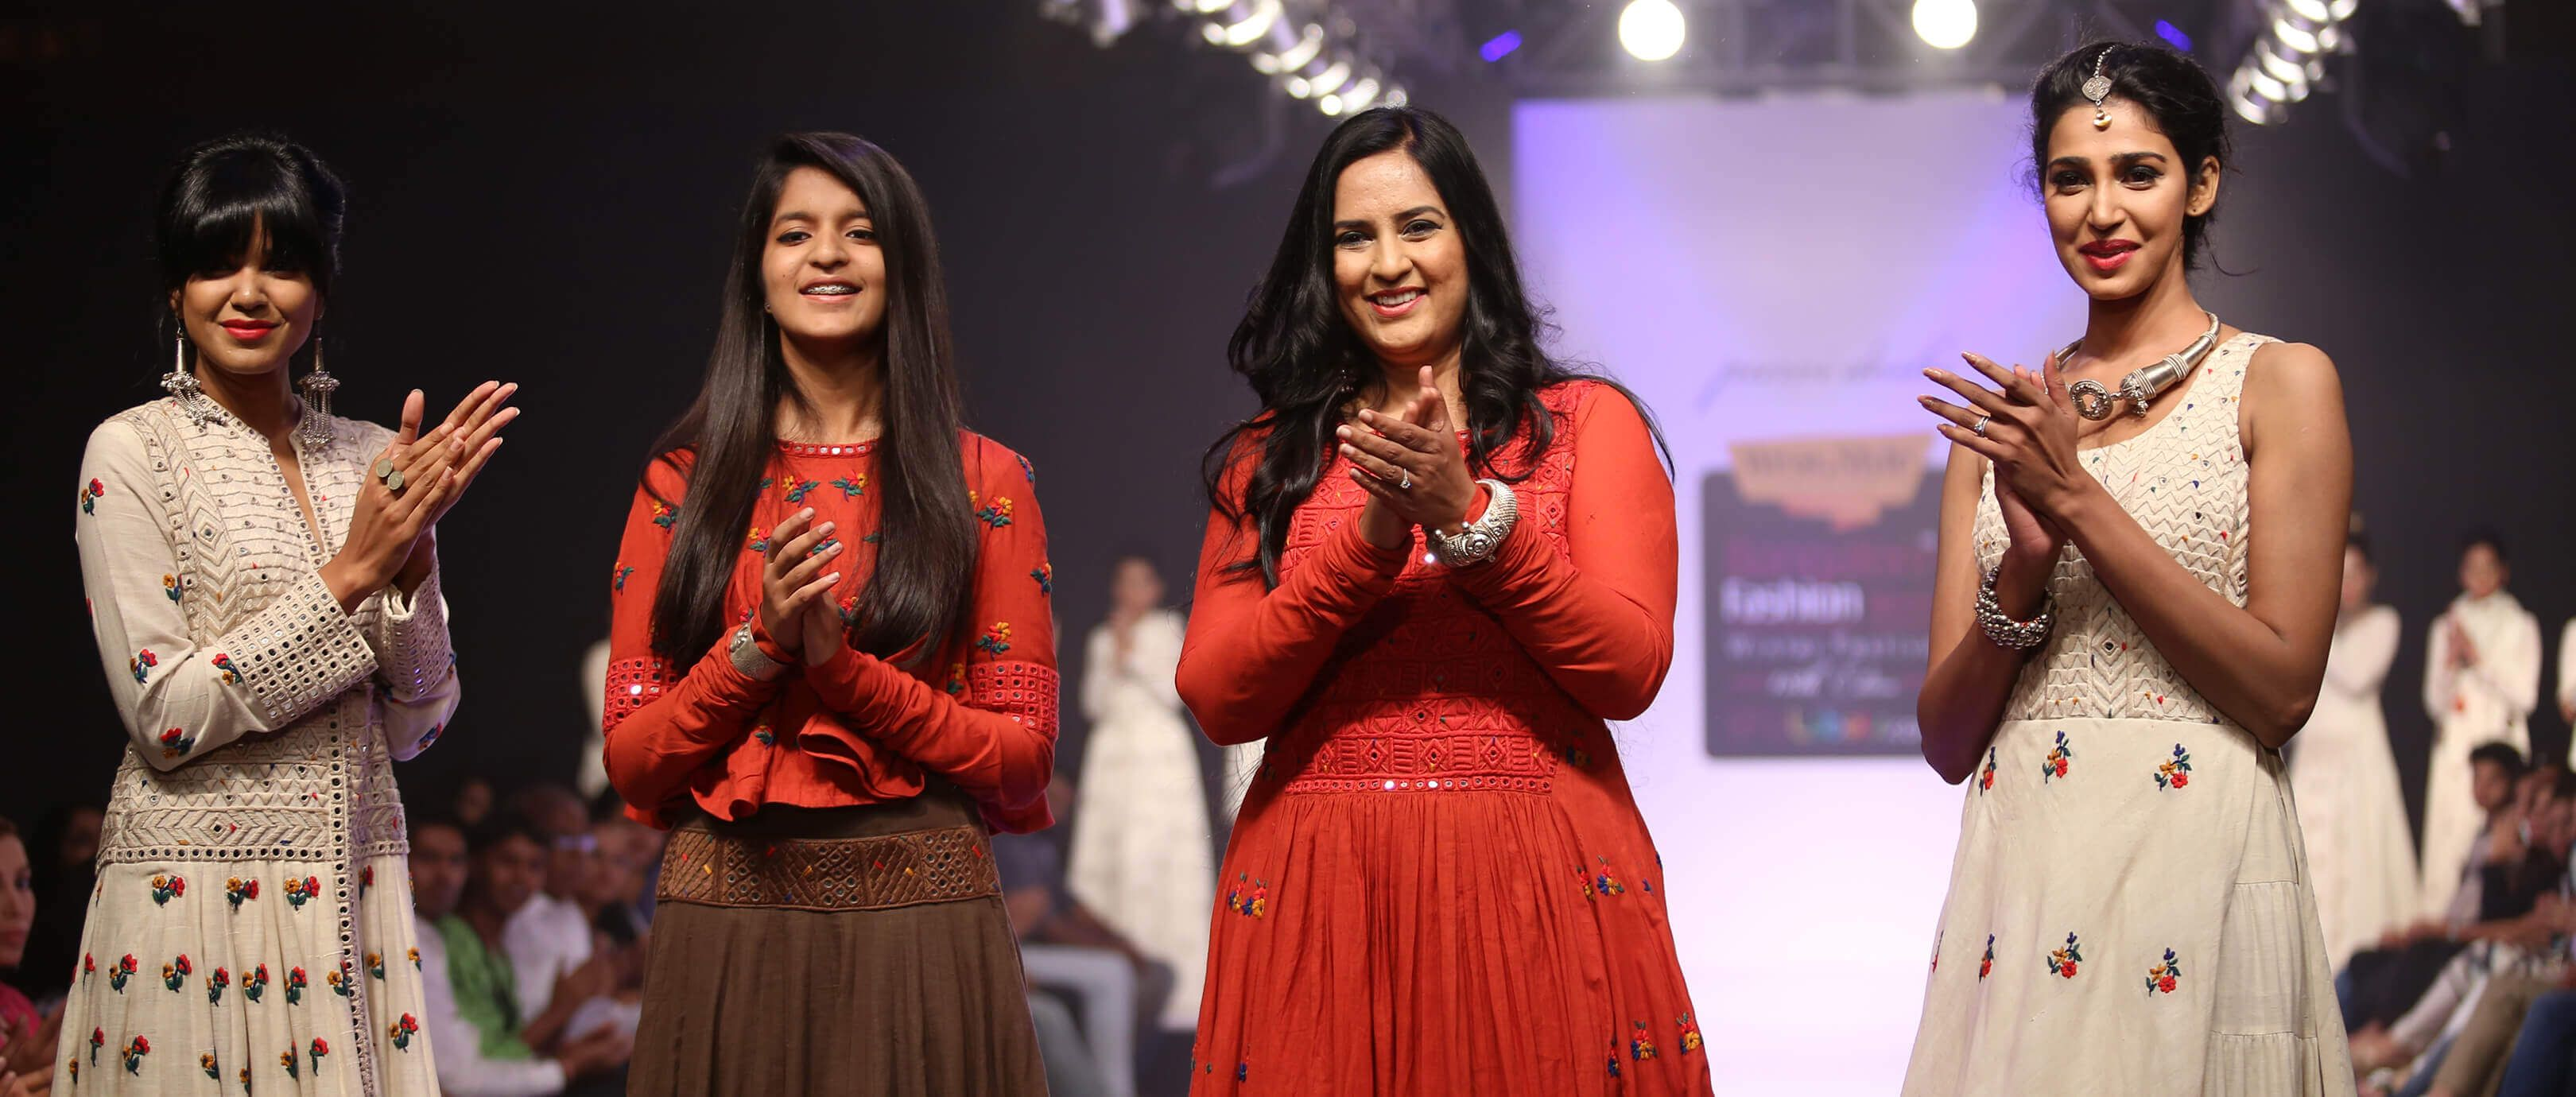 Purvi_Doshi_Bangalore_Fashion_Week_Featured_Style